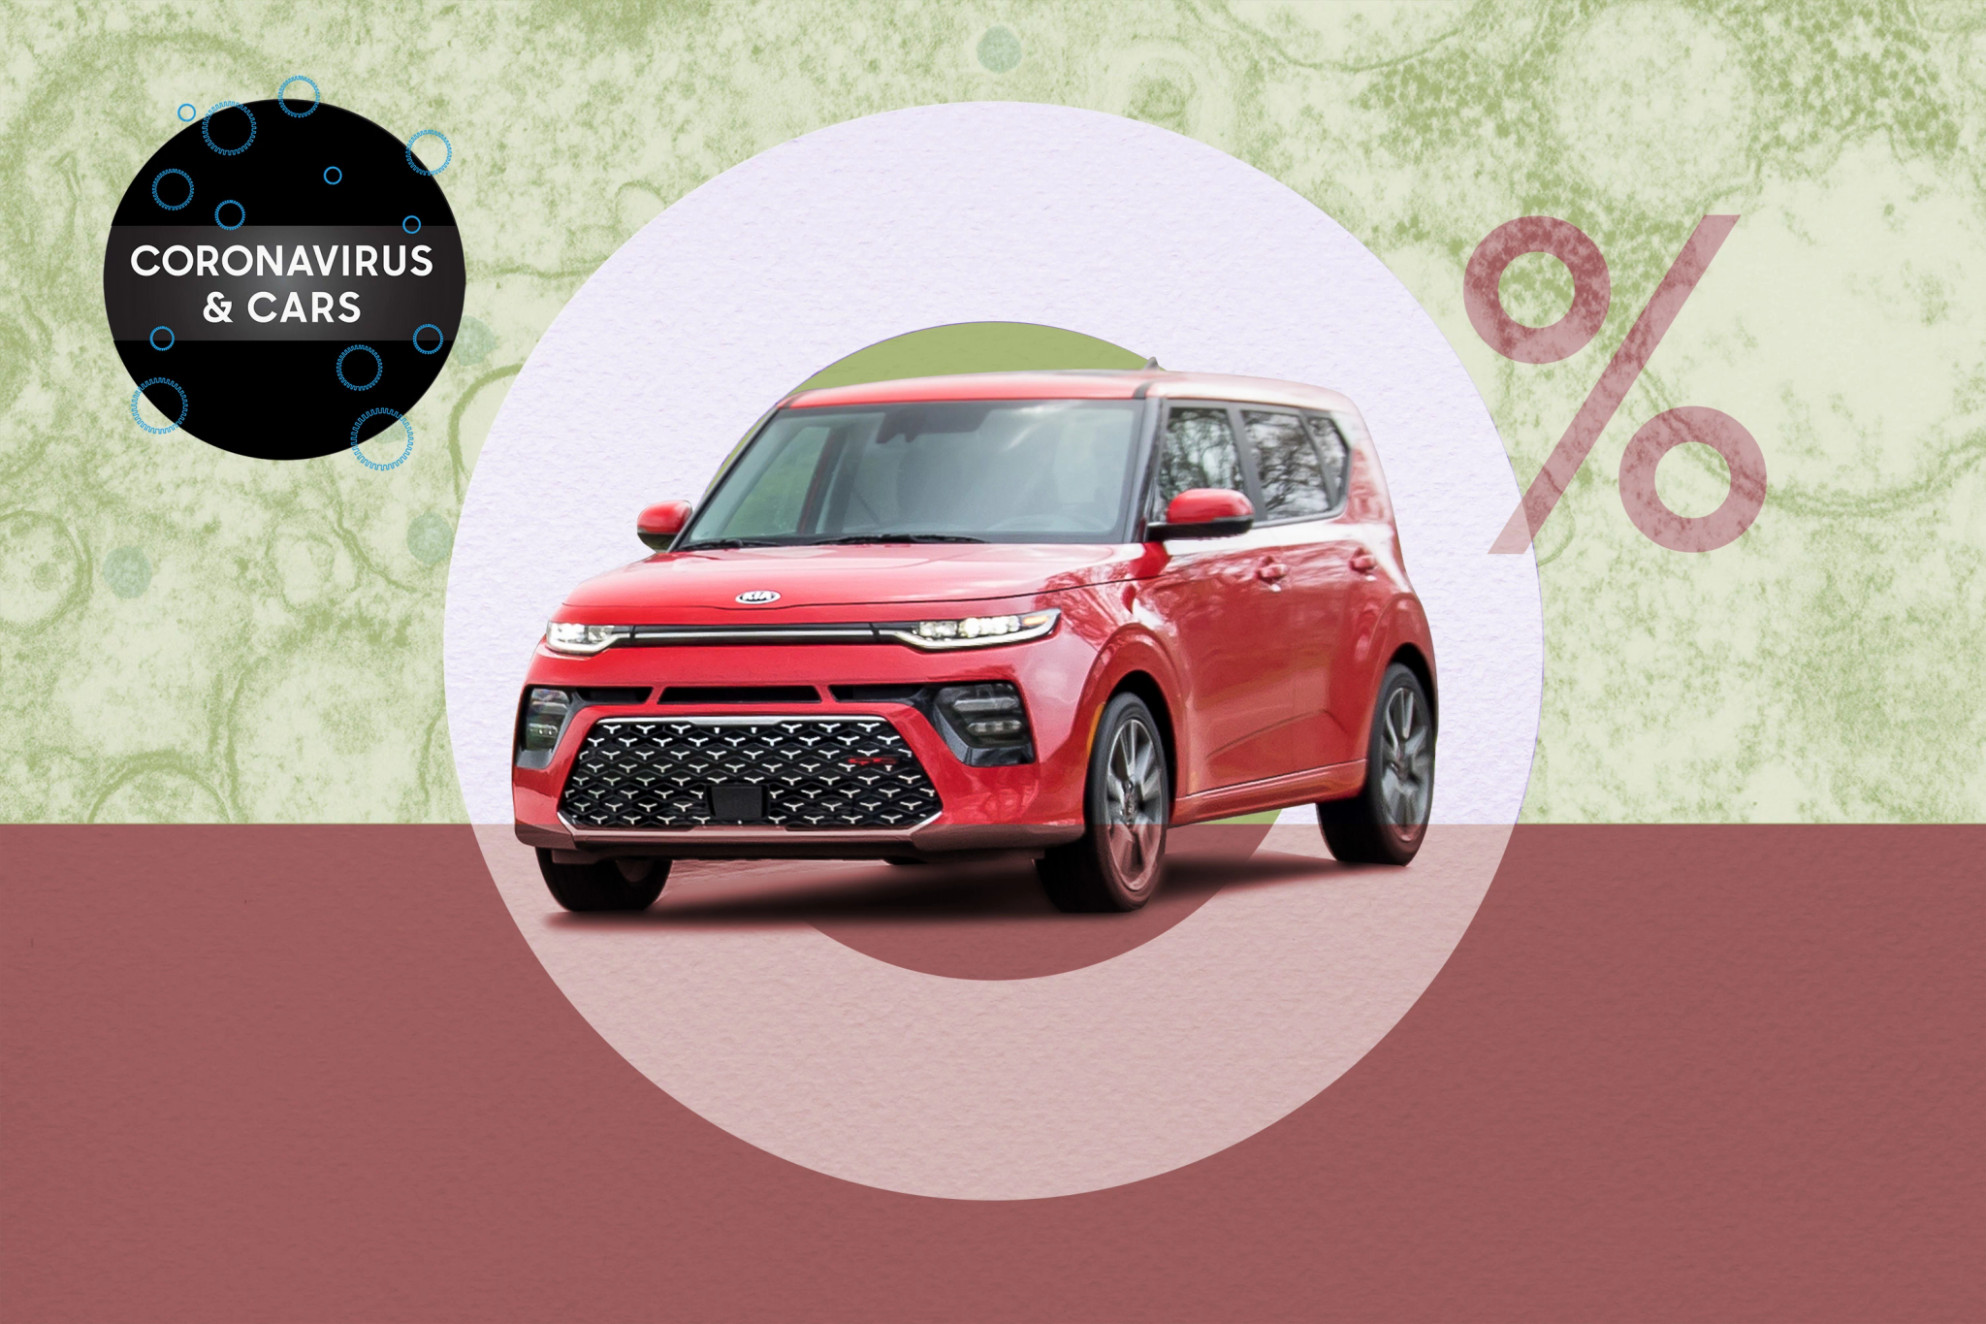 Coronavirus Car Deals: 8 Kia Models With 8% Financing and Why You ...